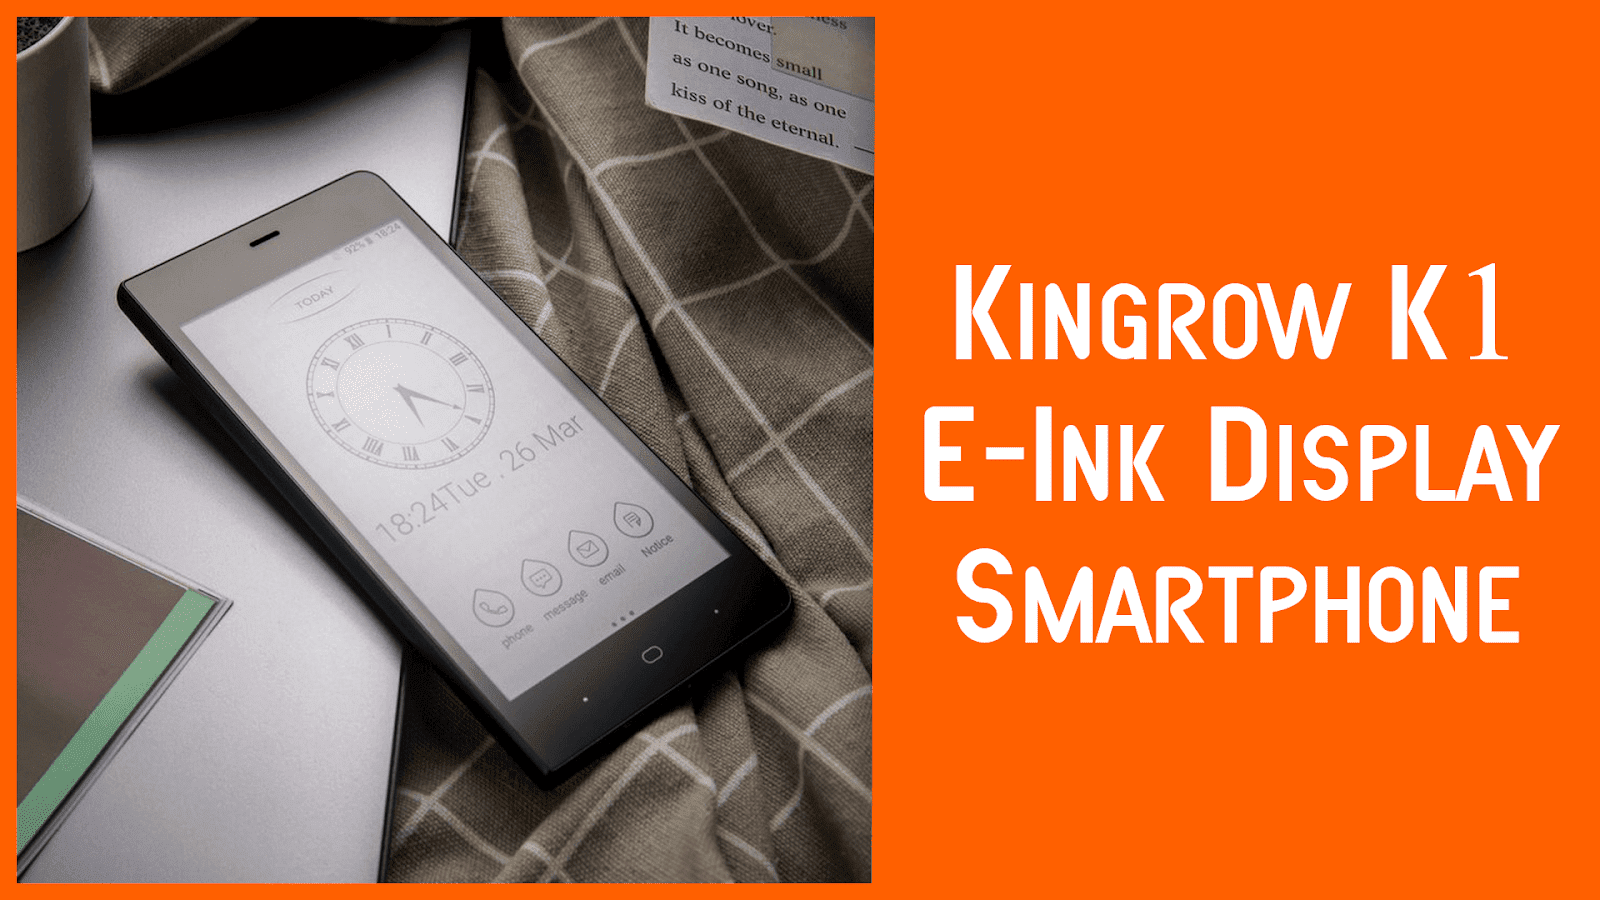 Kingrow K1 Smartphone with E-Ink Display